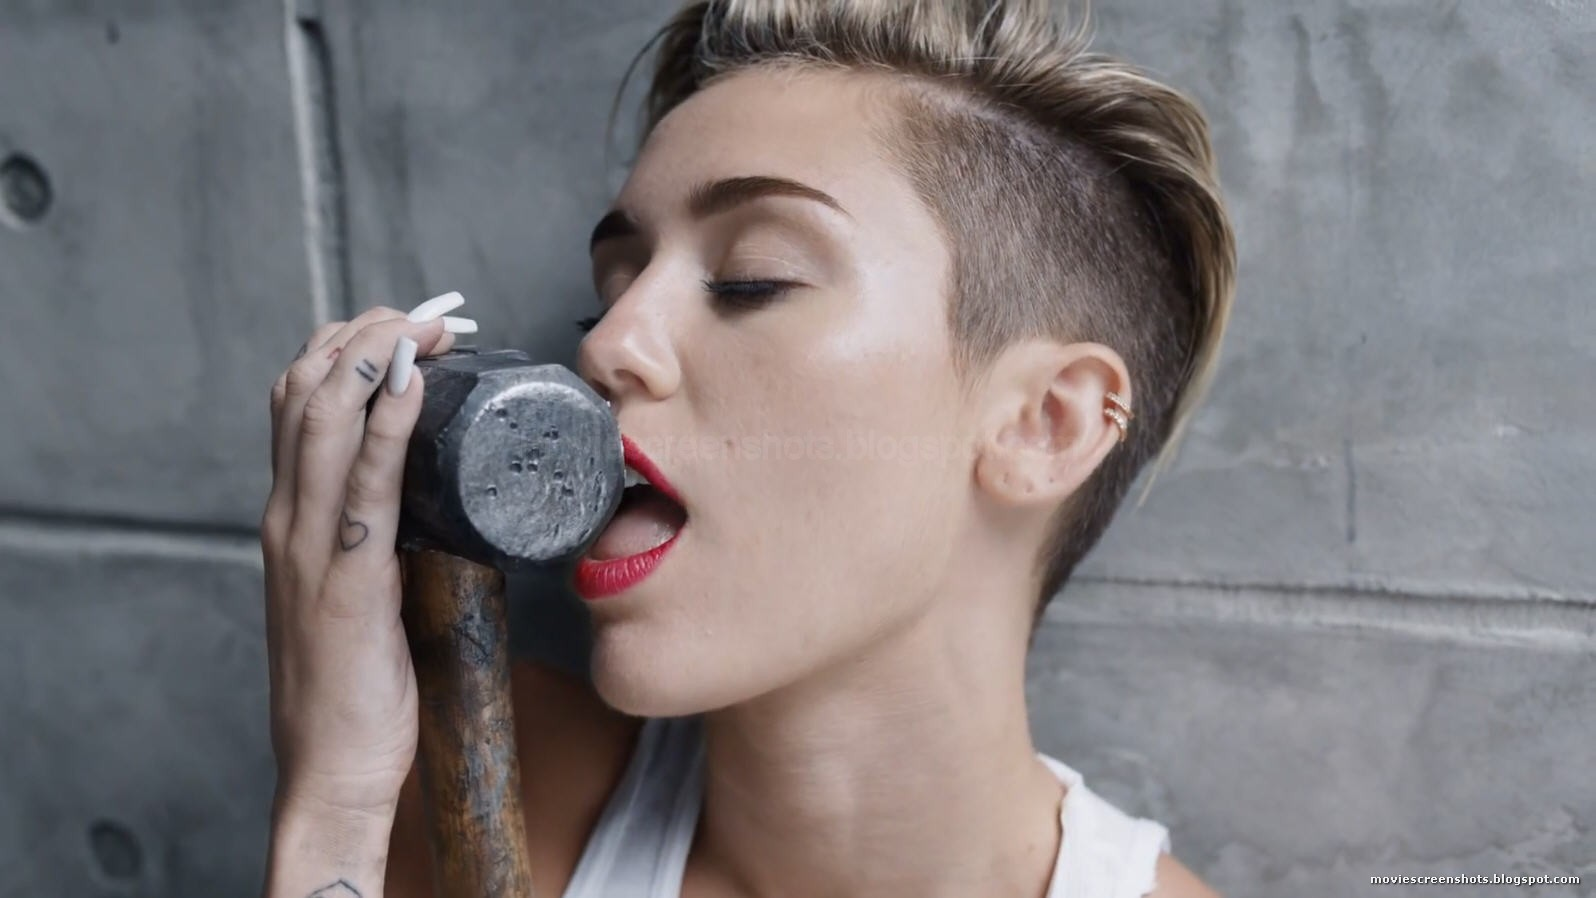 Miley cyrus wrecking ball porn edit